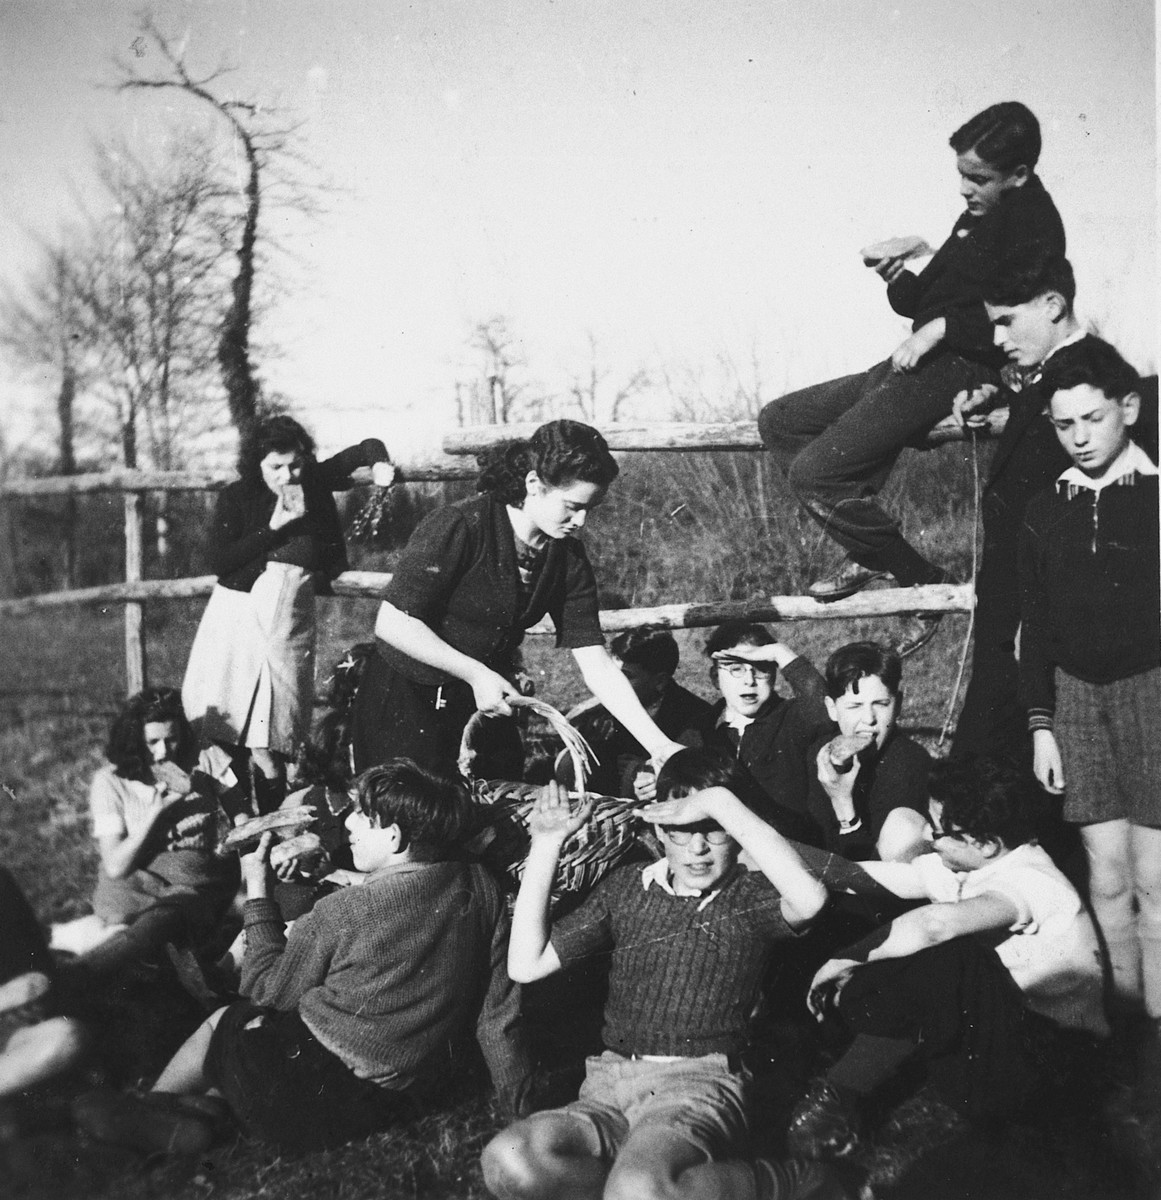 Jewish refugee teenagers enjoy a snack on the grounds of the Chateau de Chabannes OSE [Oeuvre de Secours aux Enfants] children's home.